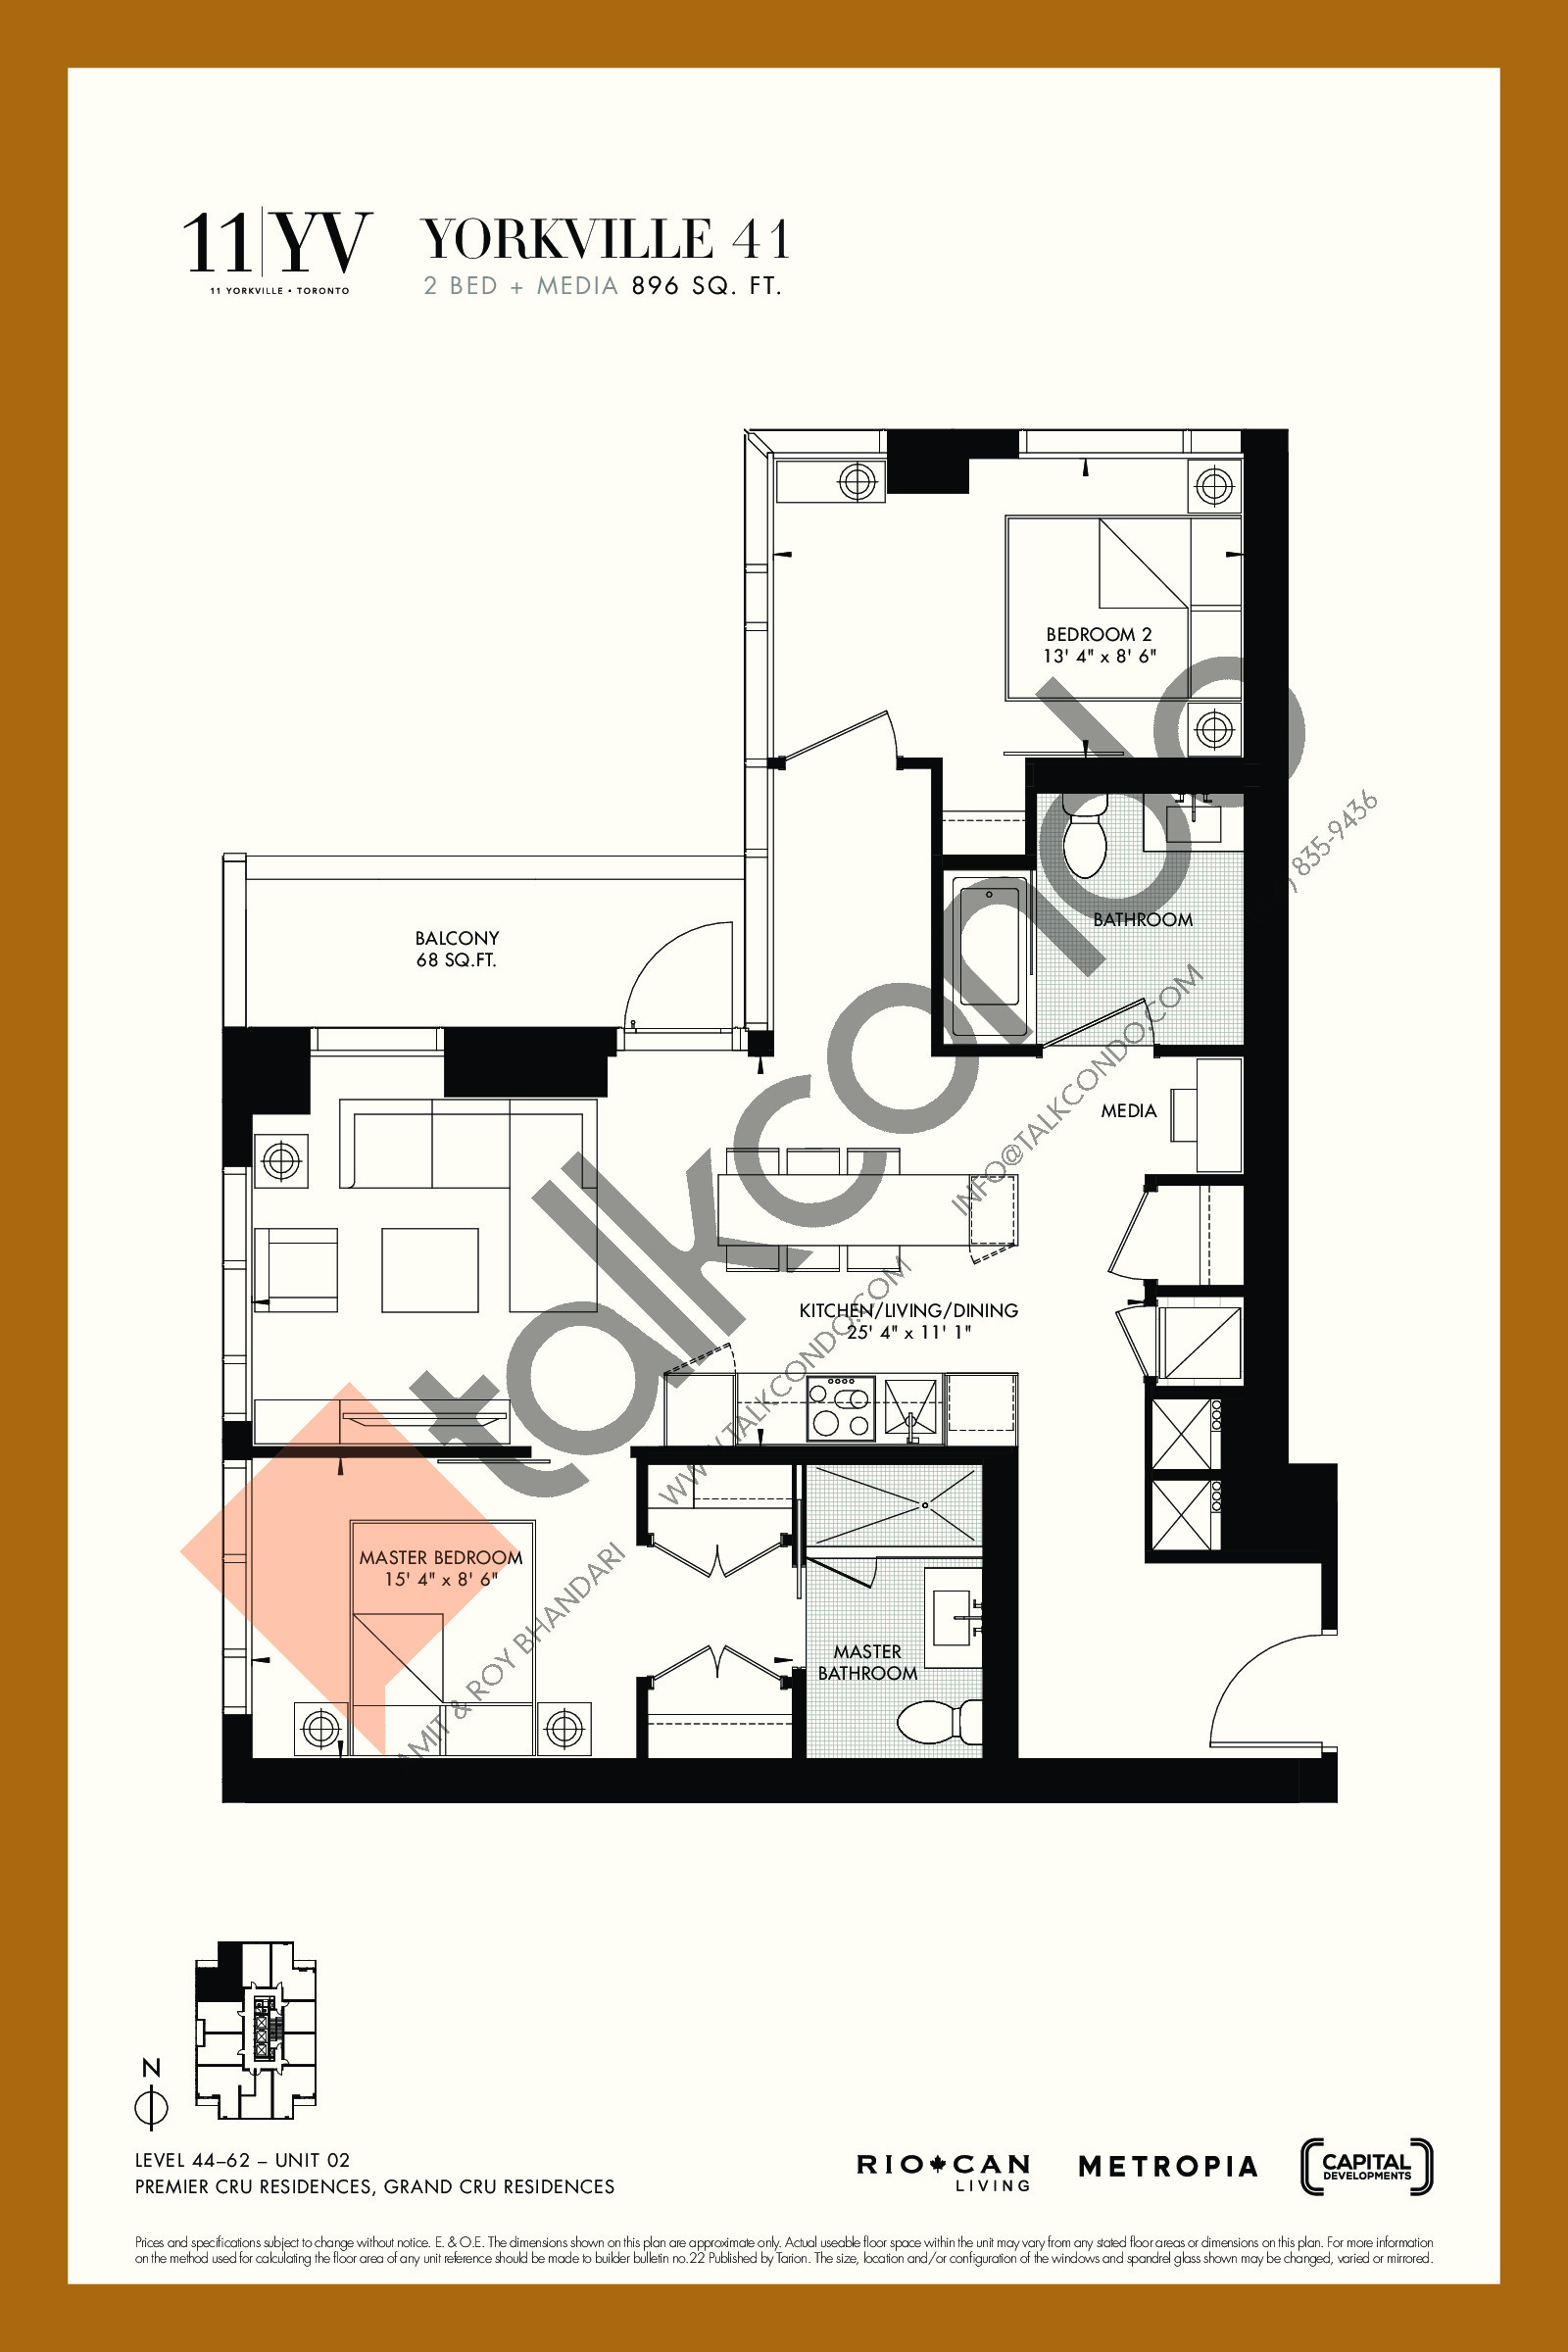 Yorkville 41 Floor Plan at 11YV Condos - 896 sq.ft